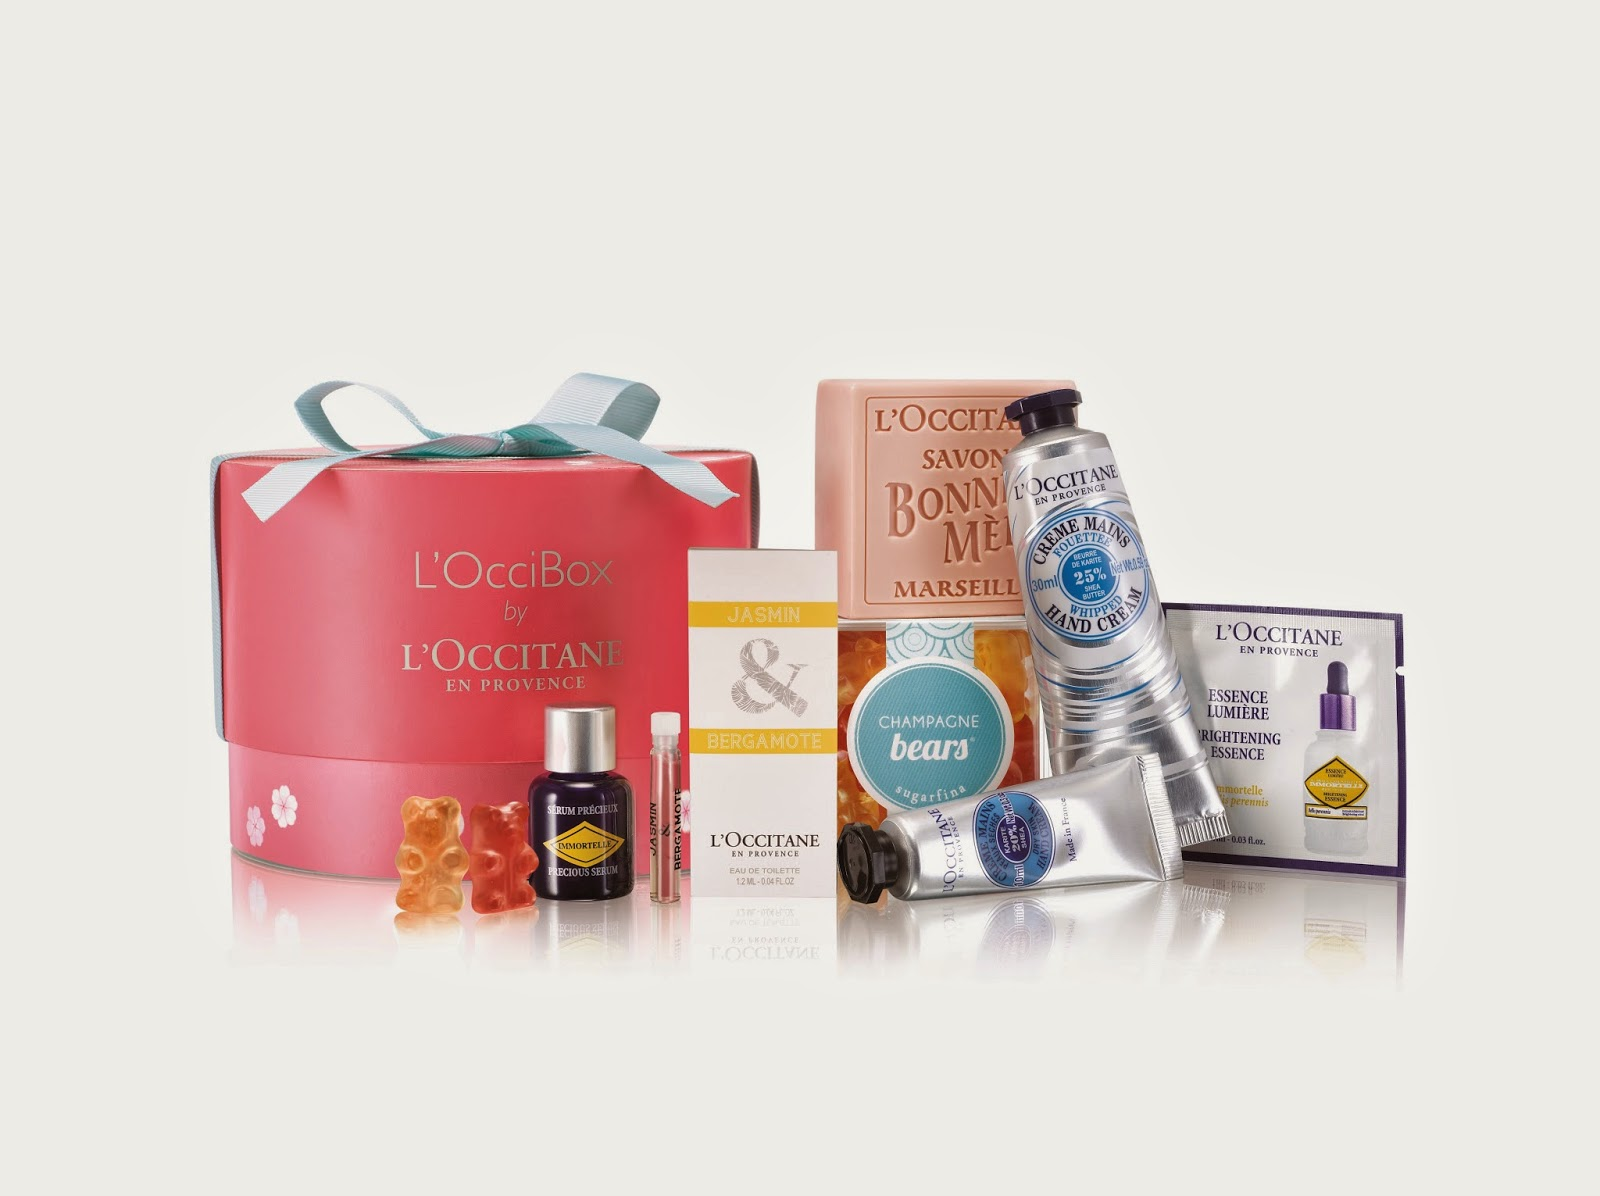 L'Occitane en Provence's Second L'OcciBox for Spring, 2015. jpeg